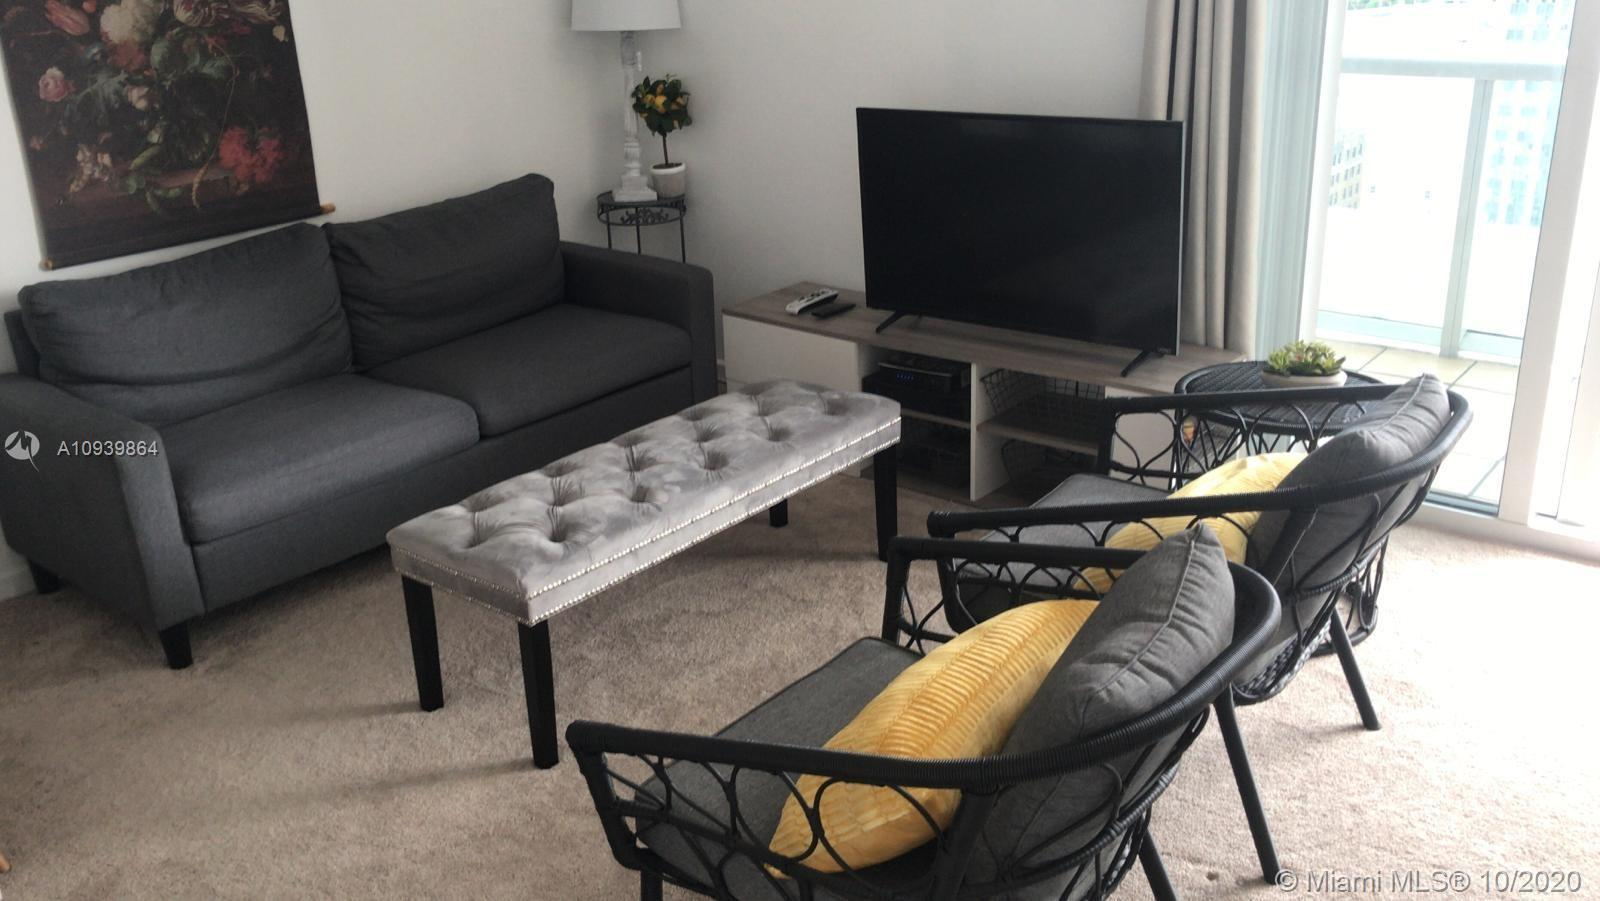 Beautiful furnished studio for rent in this great building. Unobstructed views of the city of Miami.